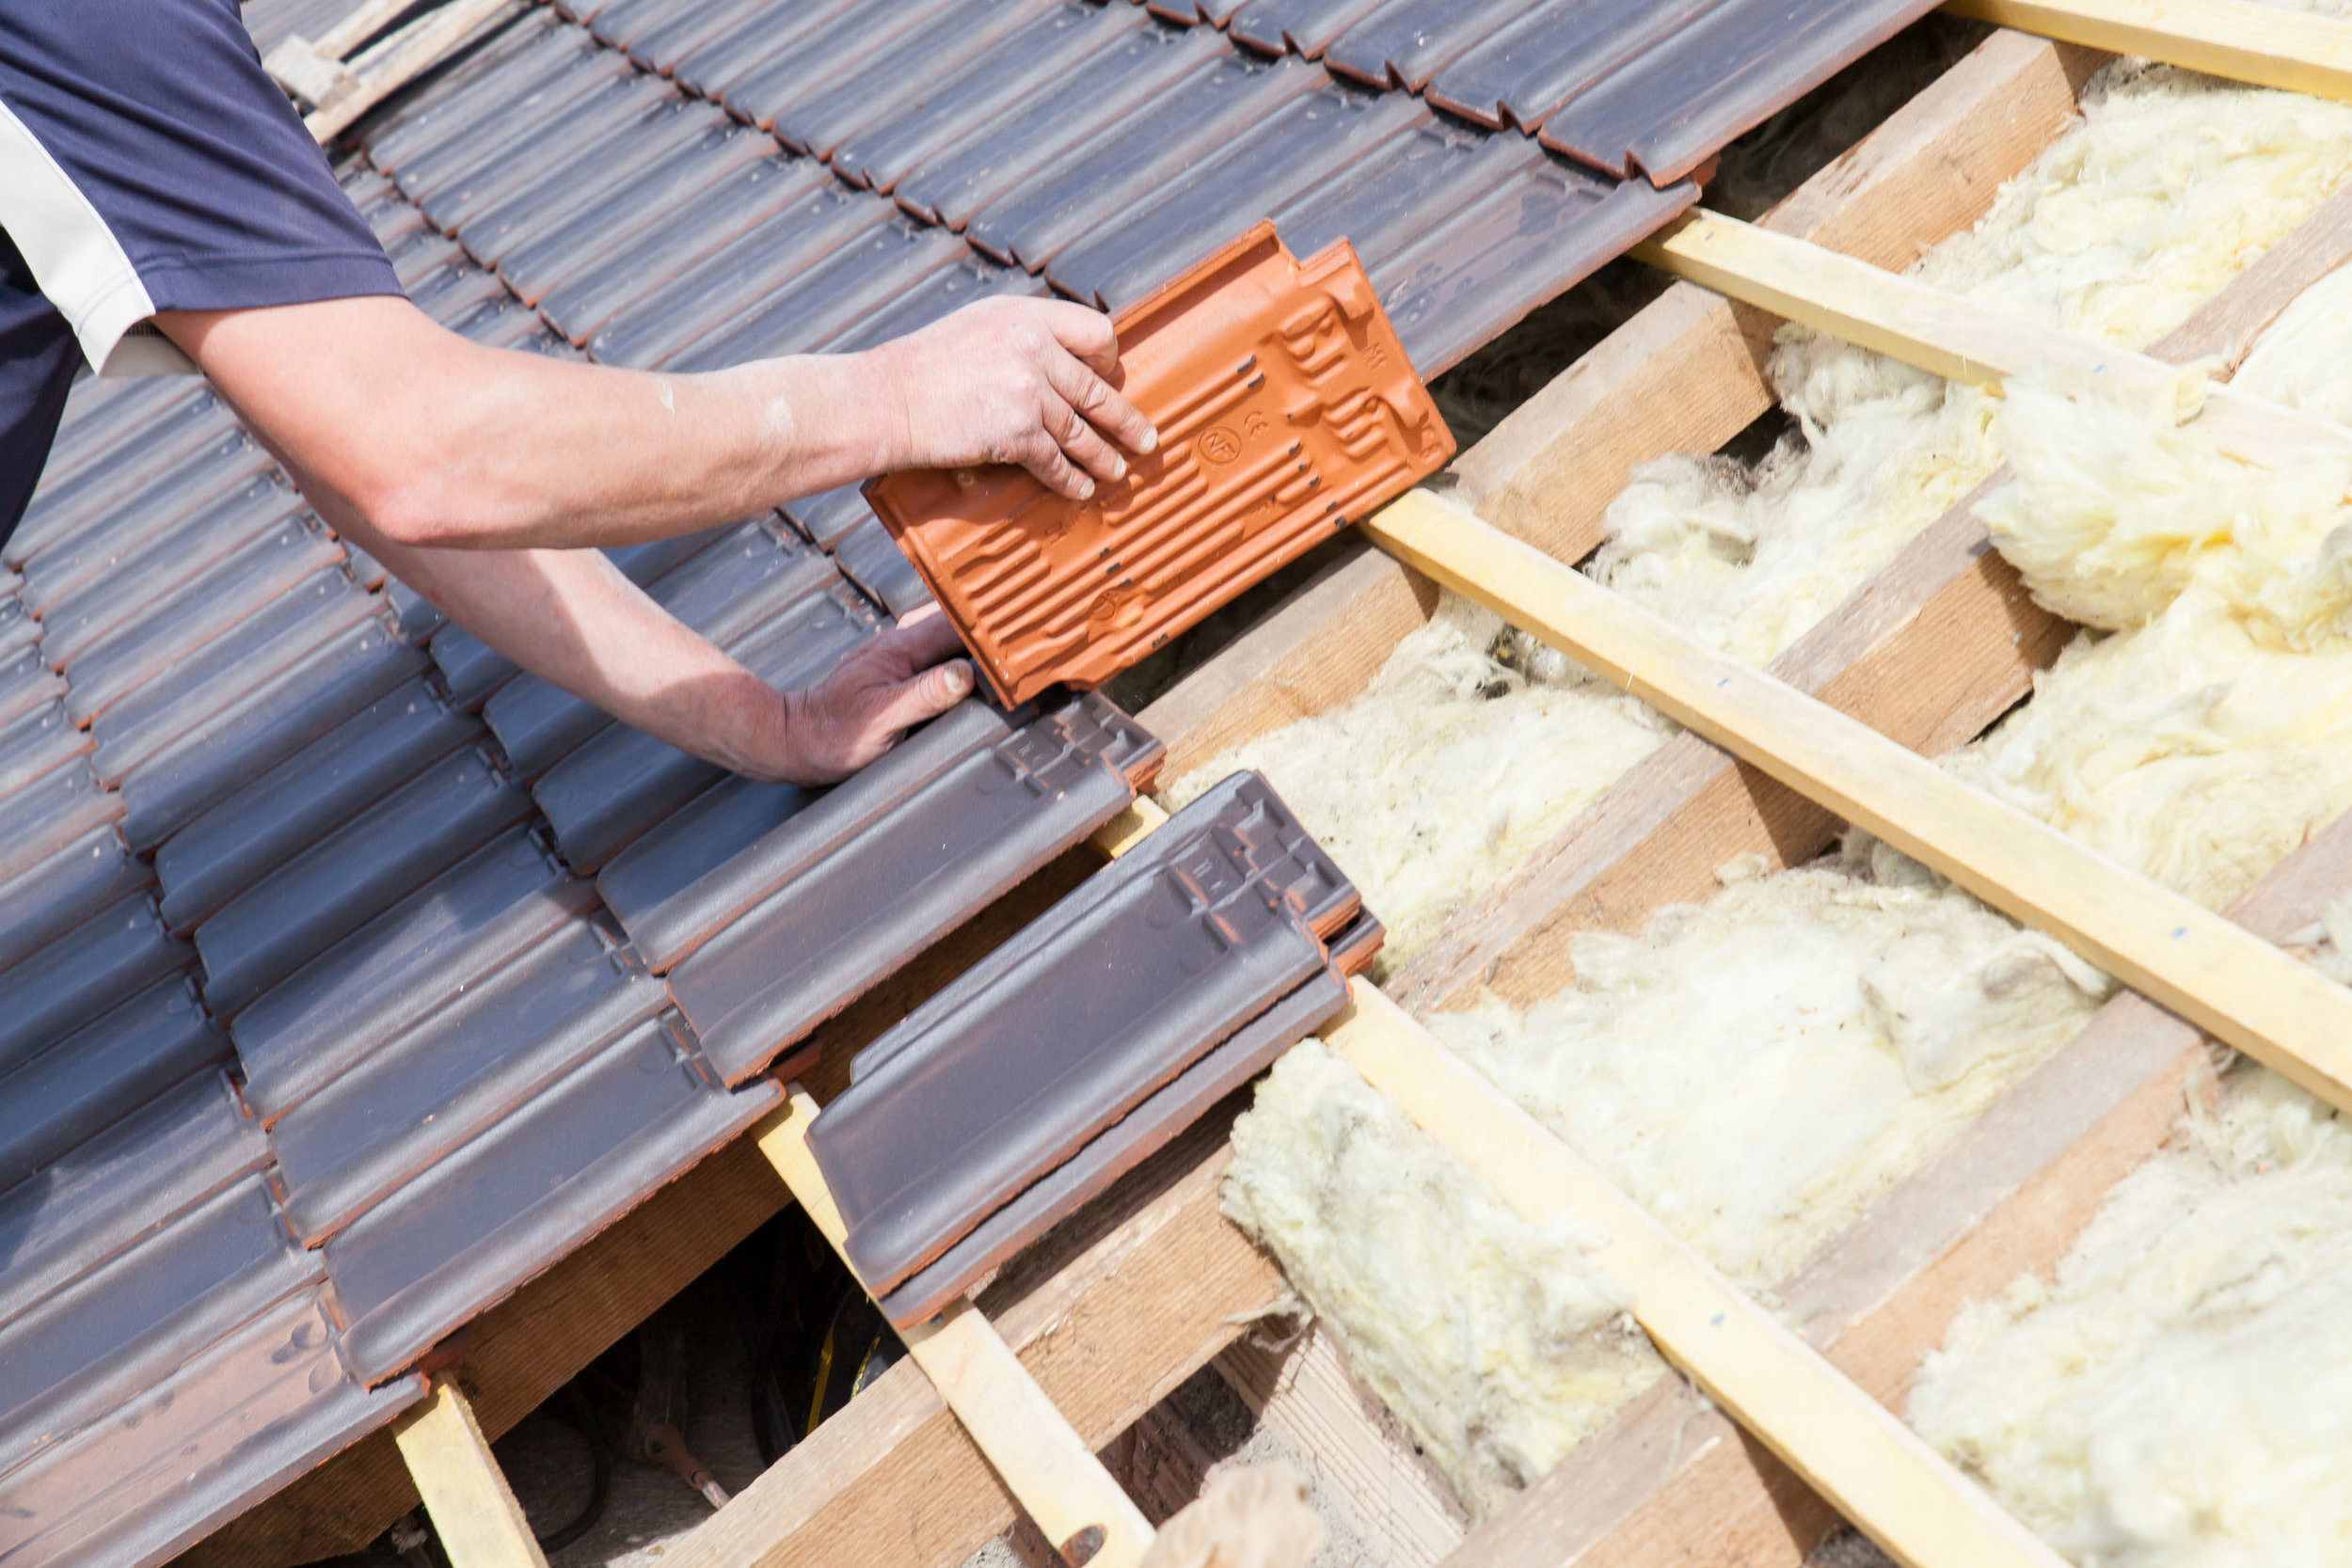 Man laying new tiles on roof